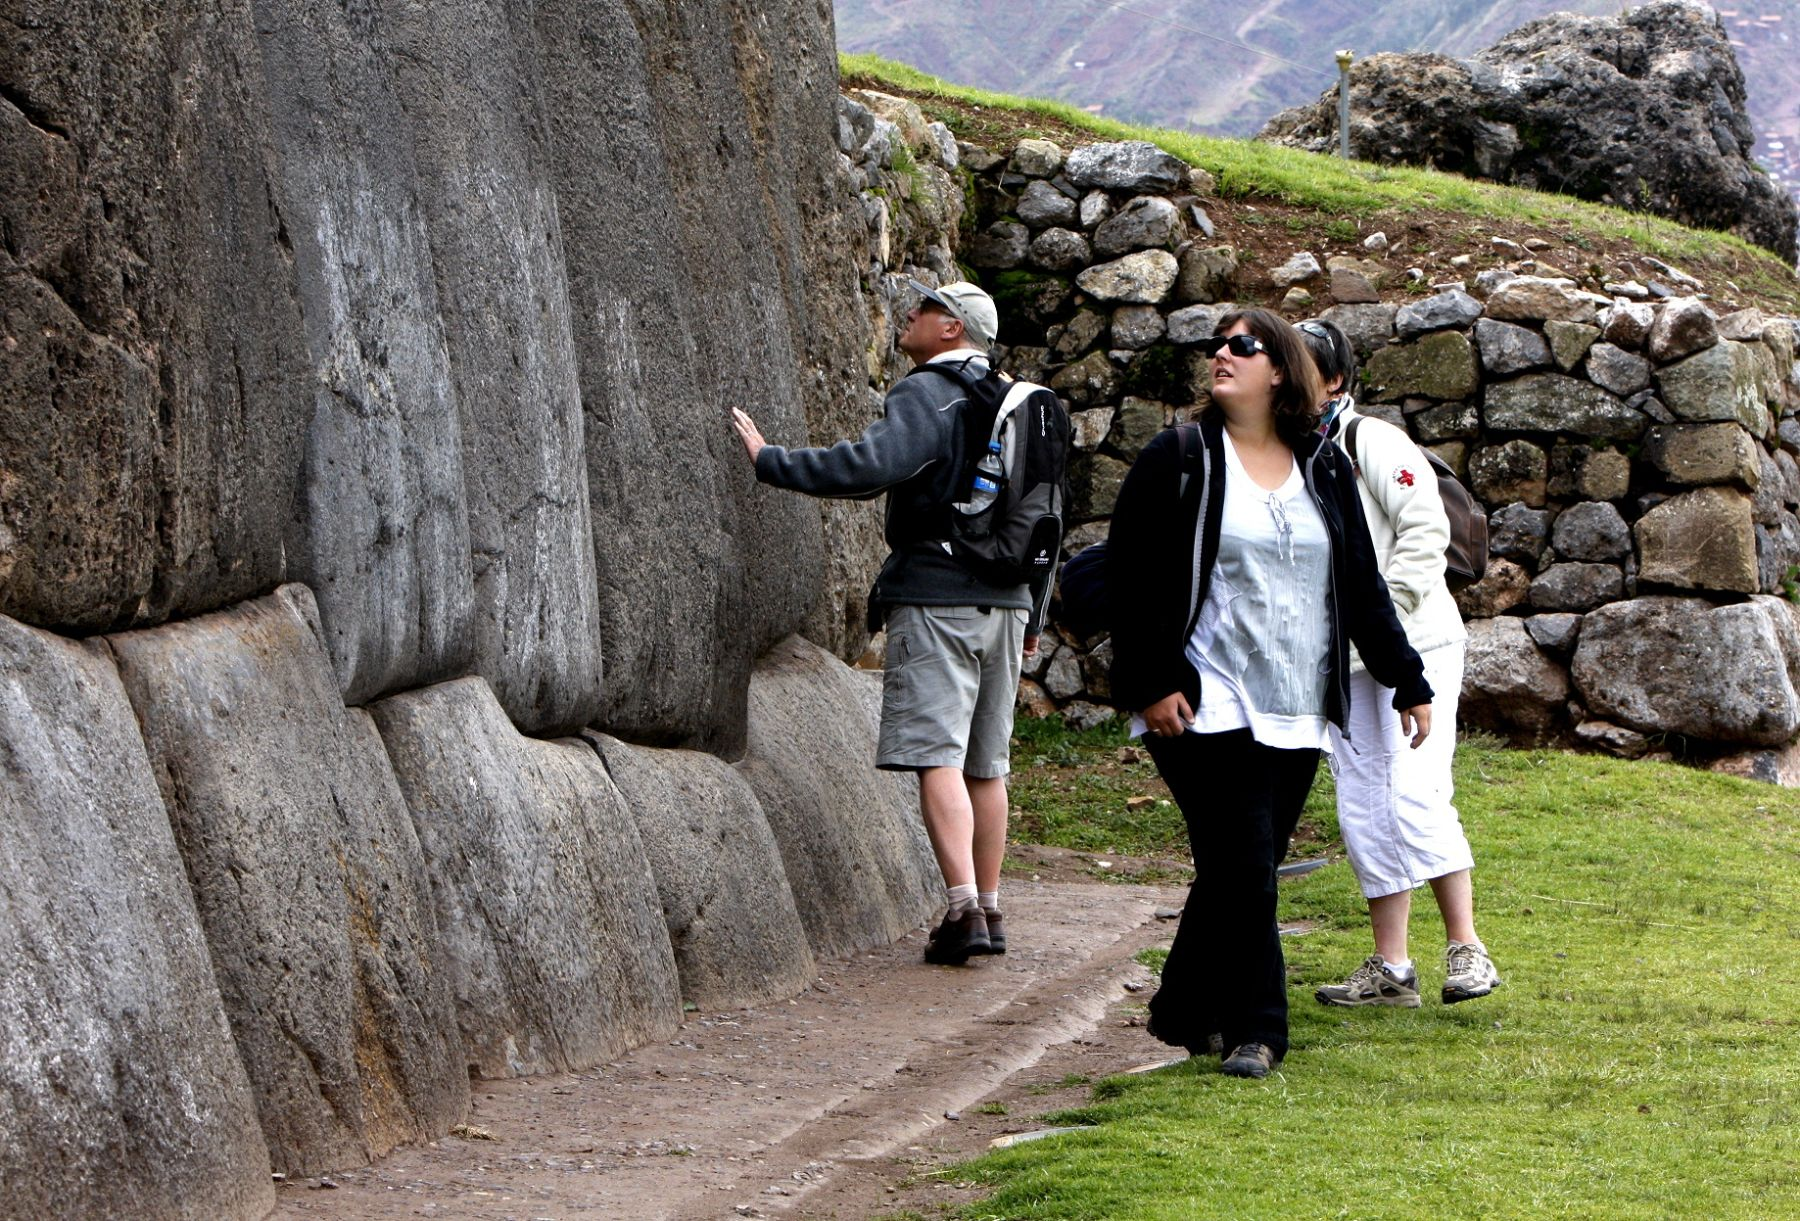 Packages and tours From 1 to 30 Days in Peru Tours: 07 días:Tour Lima, Cusco, MachuPicchu, lago Titicaca, Uros. Los mejores paquetes turísticos en Perú y Sudamérica.